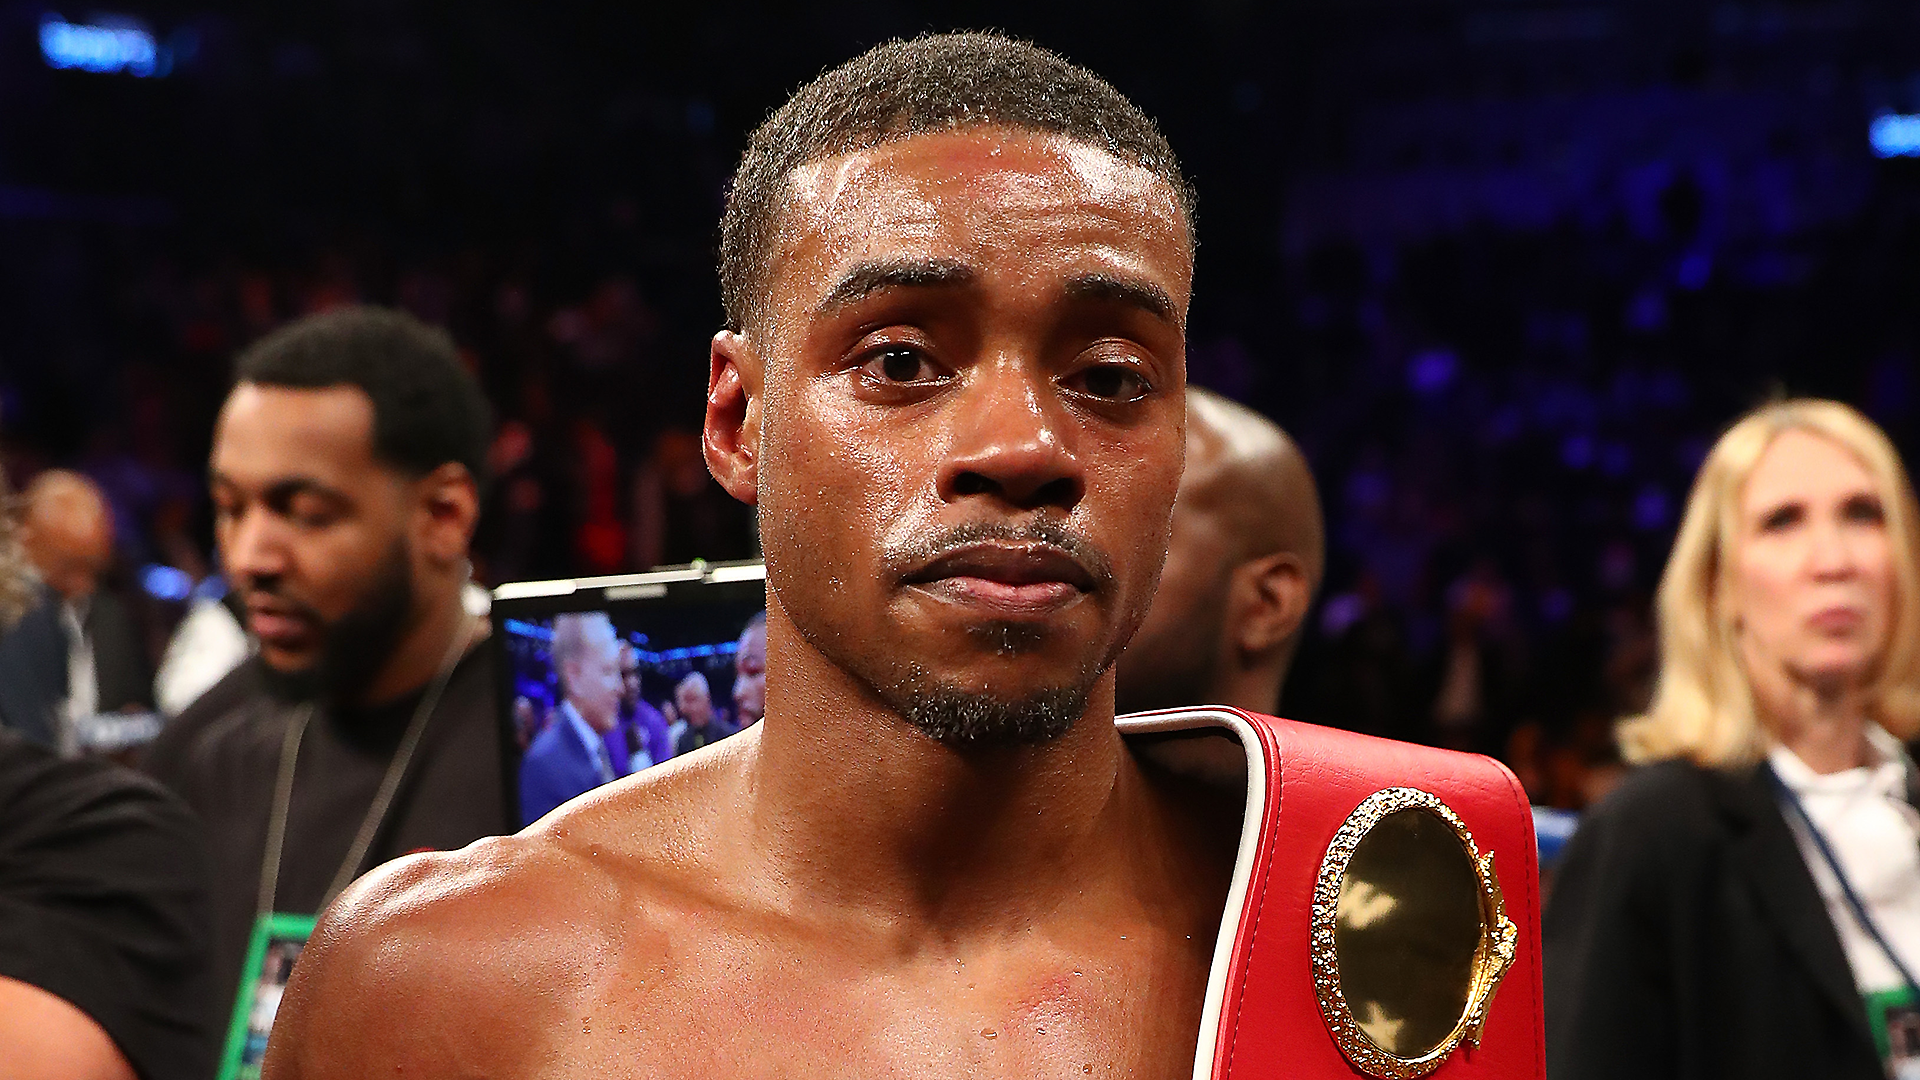 Errol Spence Jr. stable after being injured in 'serious' car crash, PBC says